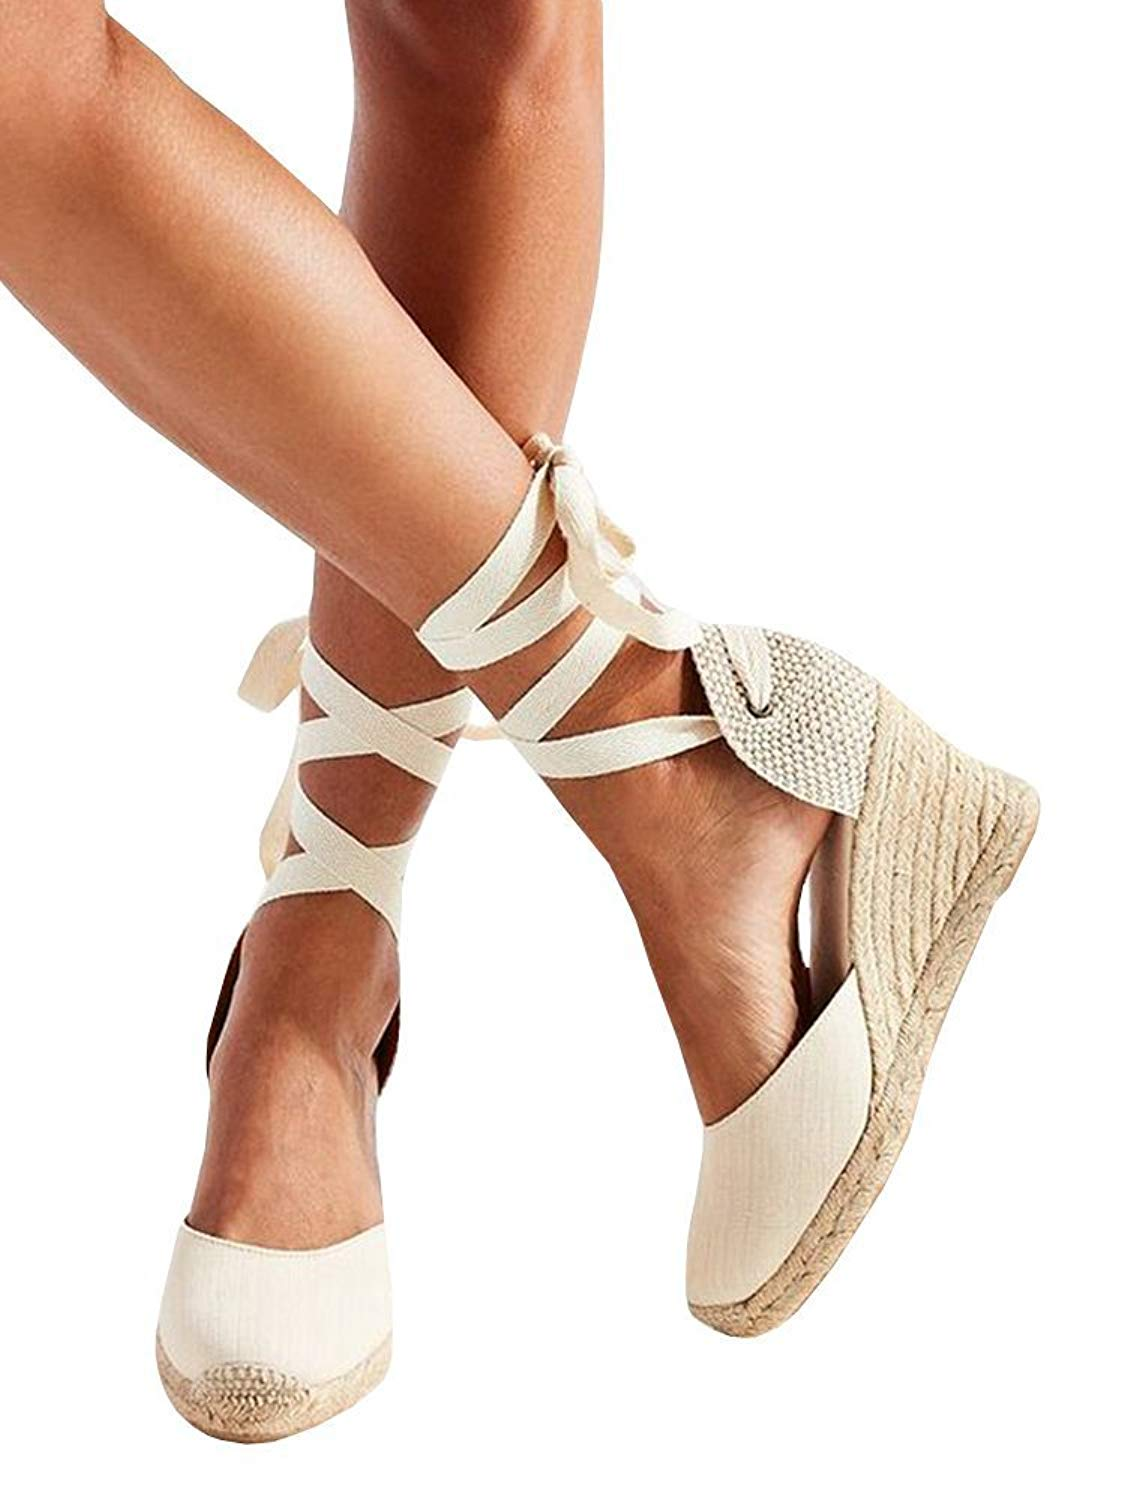 9353d08a64e8 Get Quotations · Syktkmx Womens Lace Up Platform Wedge Espadrille Heel  Closed Toe Slingback D Orsay Sandals